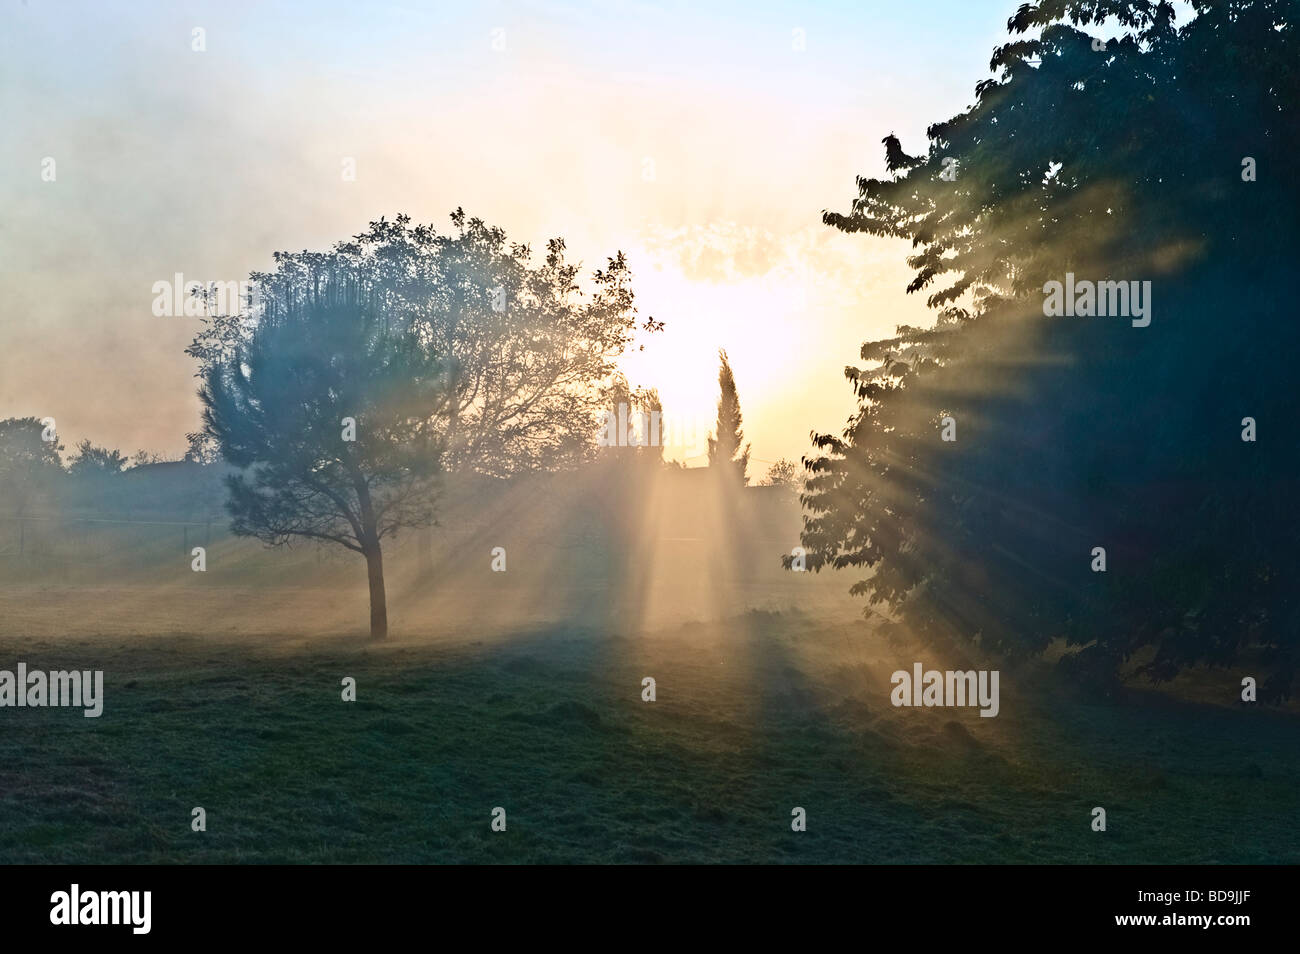 misty landscape in dramatic light - Stock Image